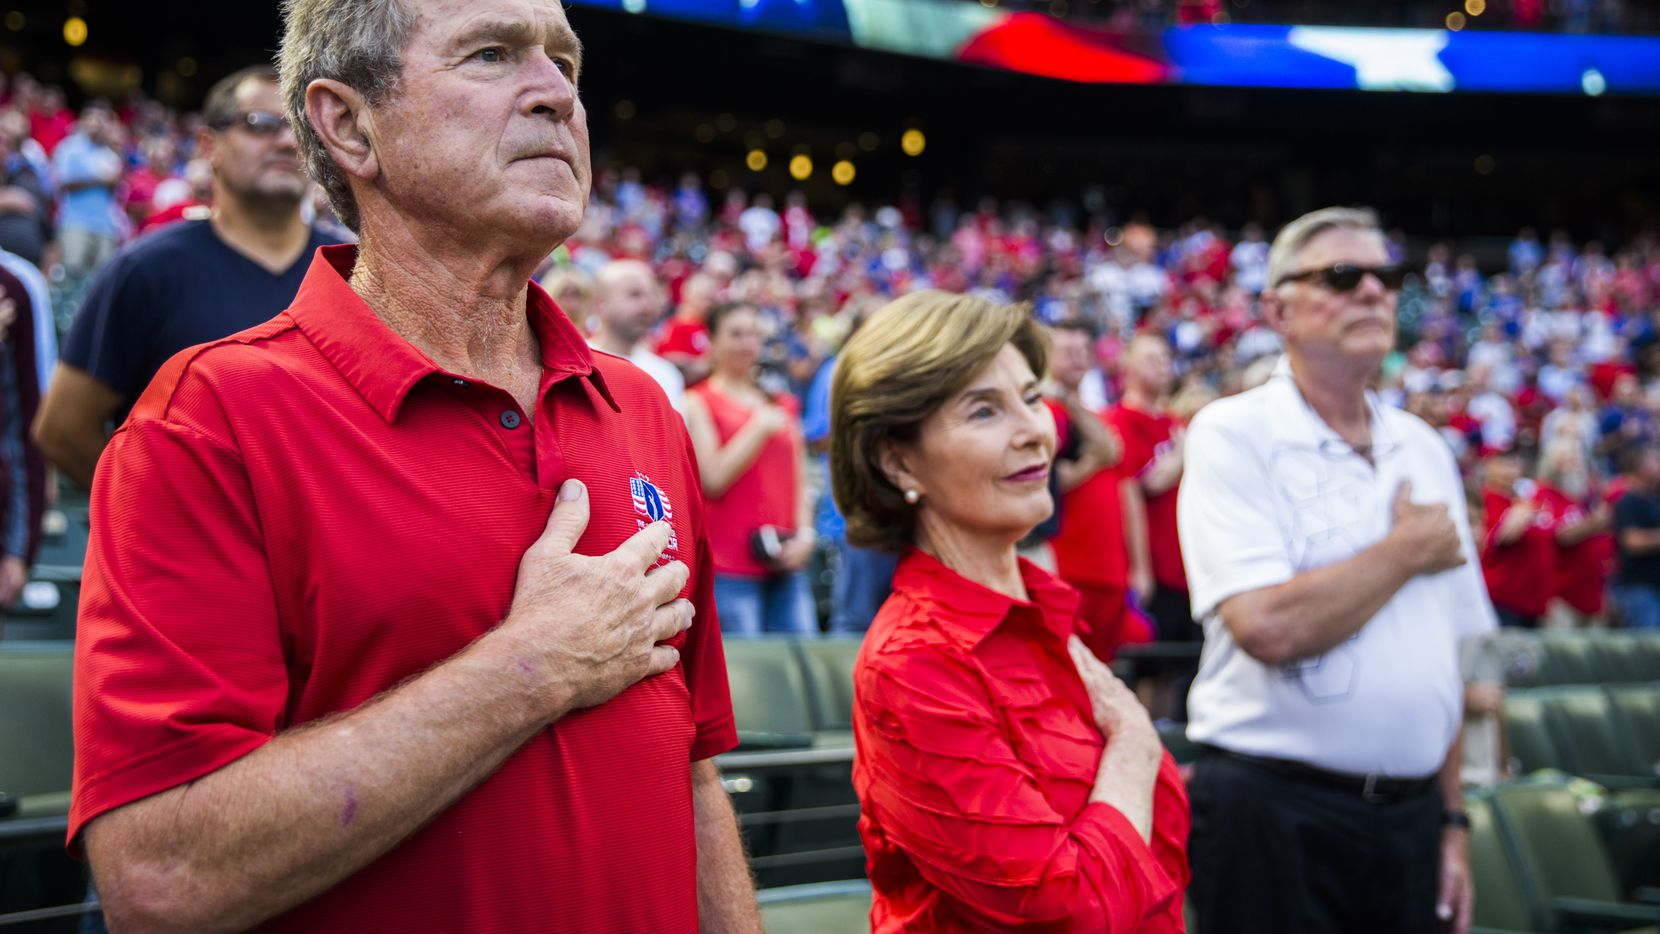 Former President George W. Bush and former first lady Laura Bush put their hands over their hearts during the singing of the national anthem before the Texas Rangers took on the Seattle Mariners on Monday, August 29, 2016 at Globe Life Park in Arlington.